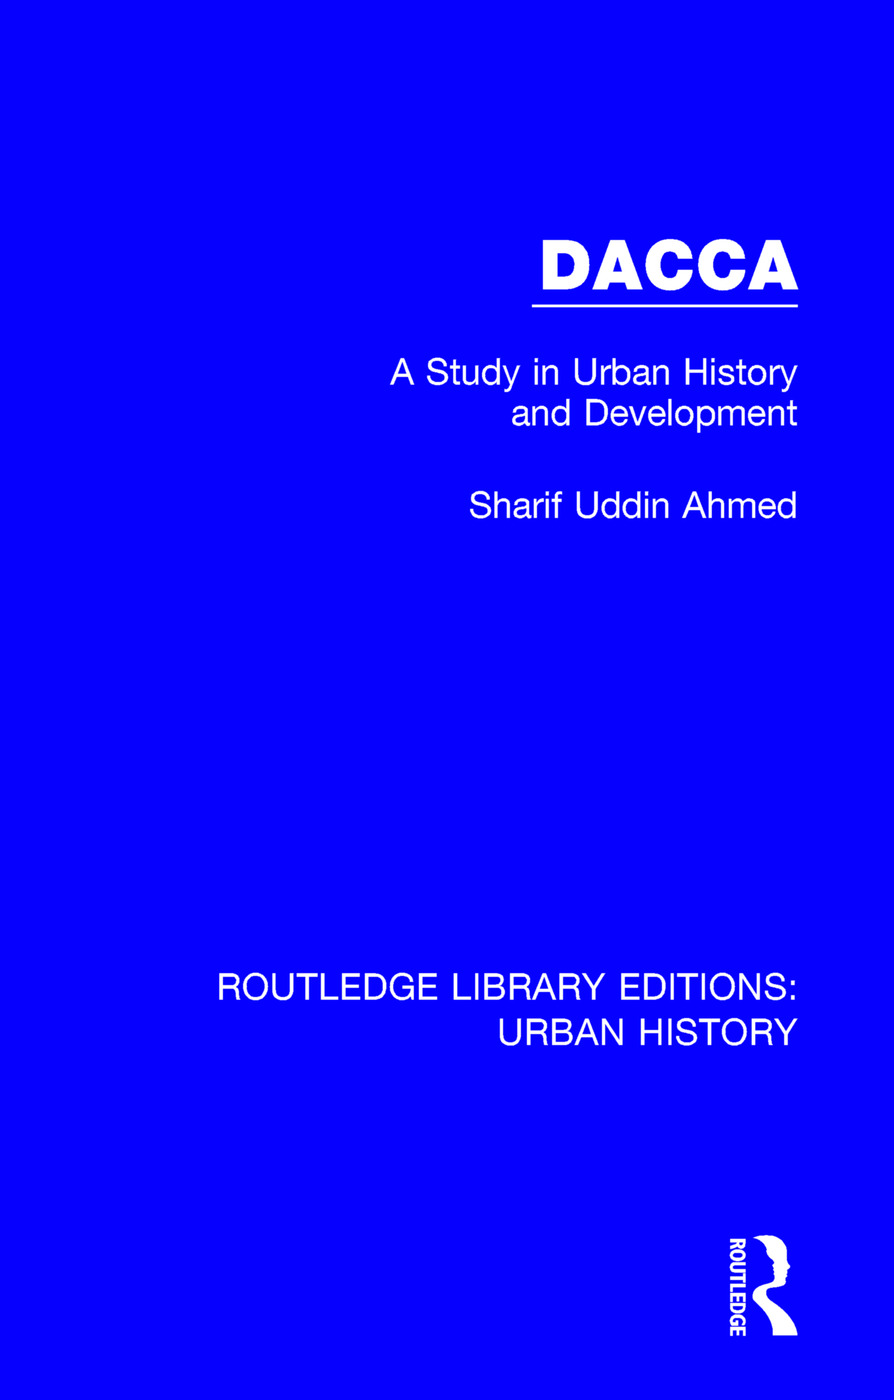 Dacca: A Study in Urban History and Development book cover